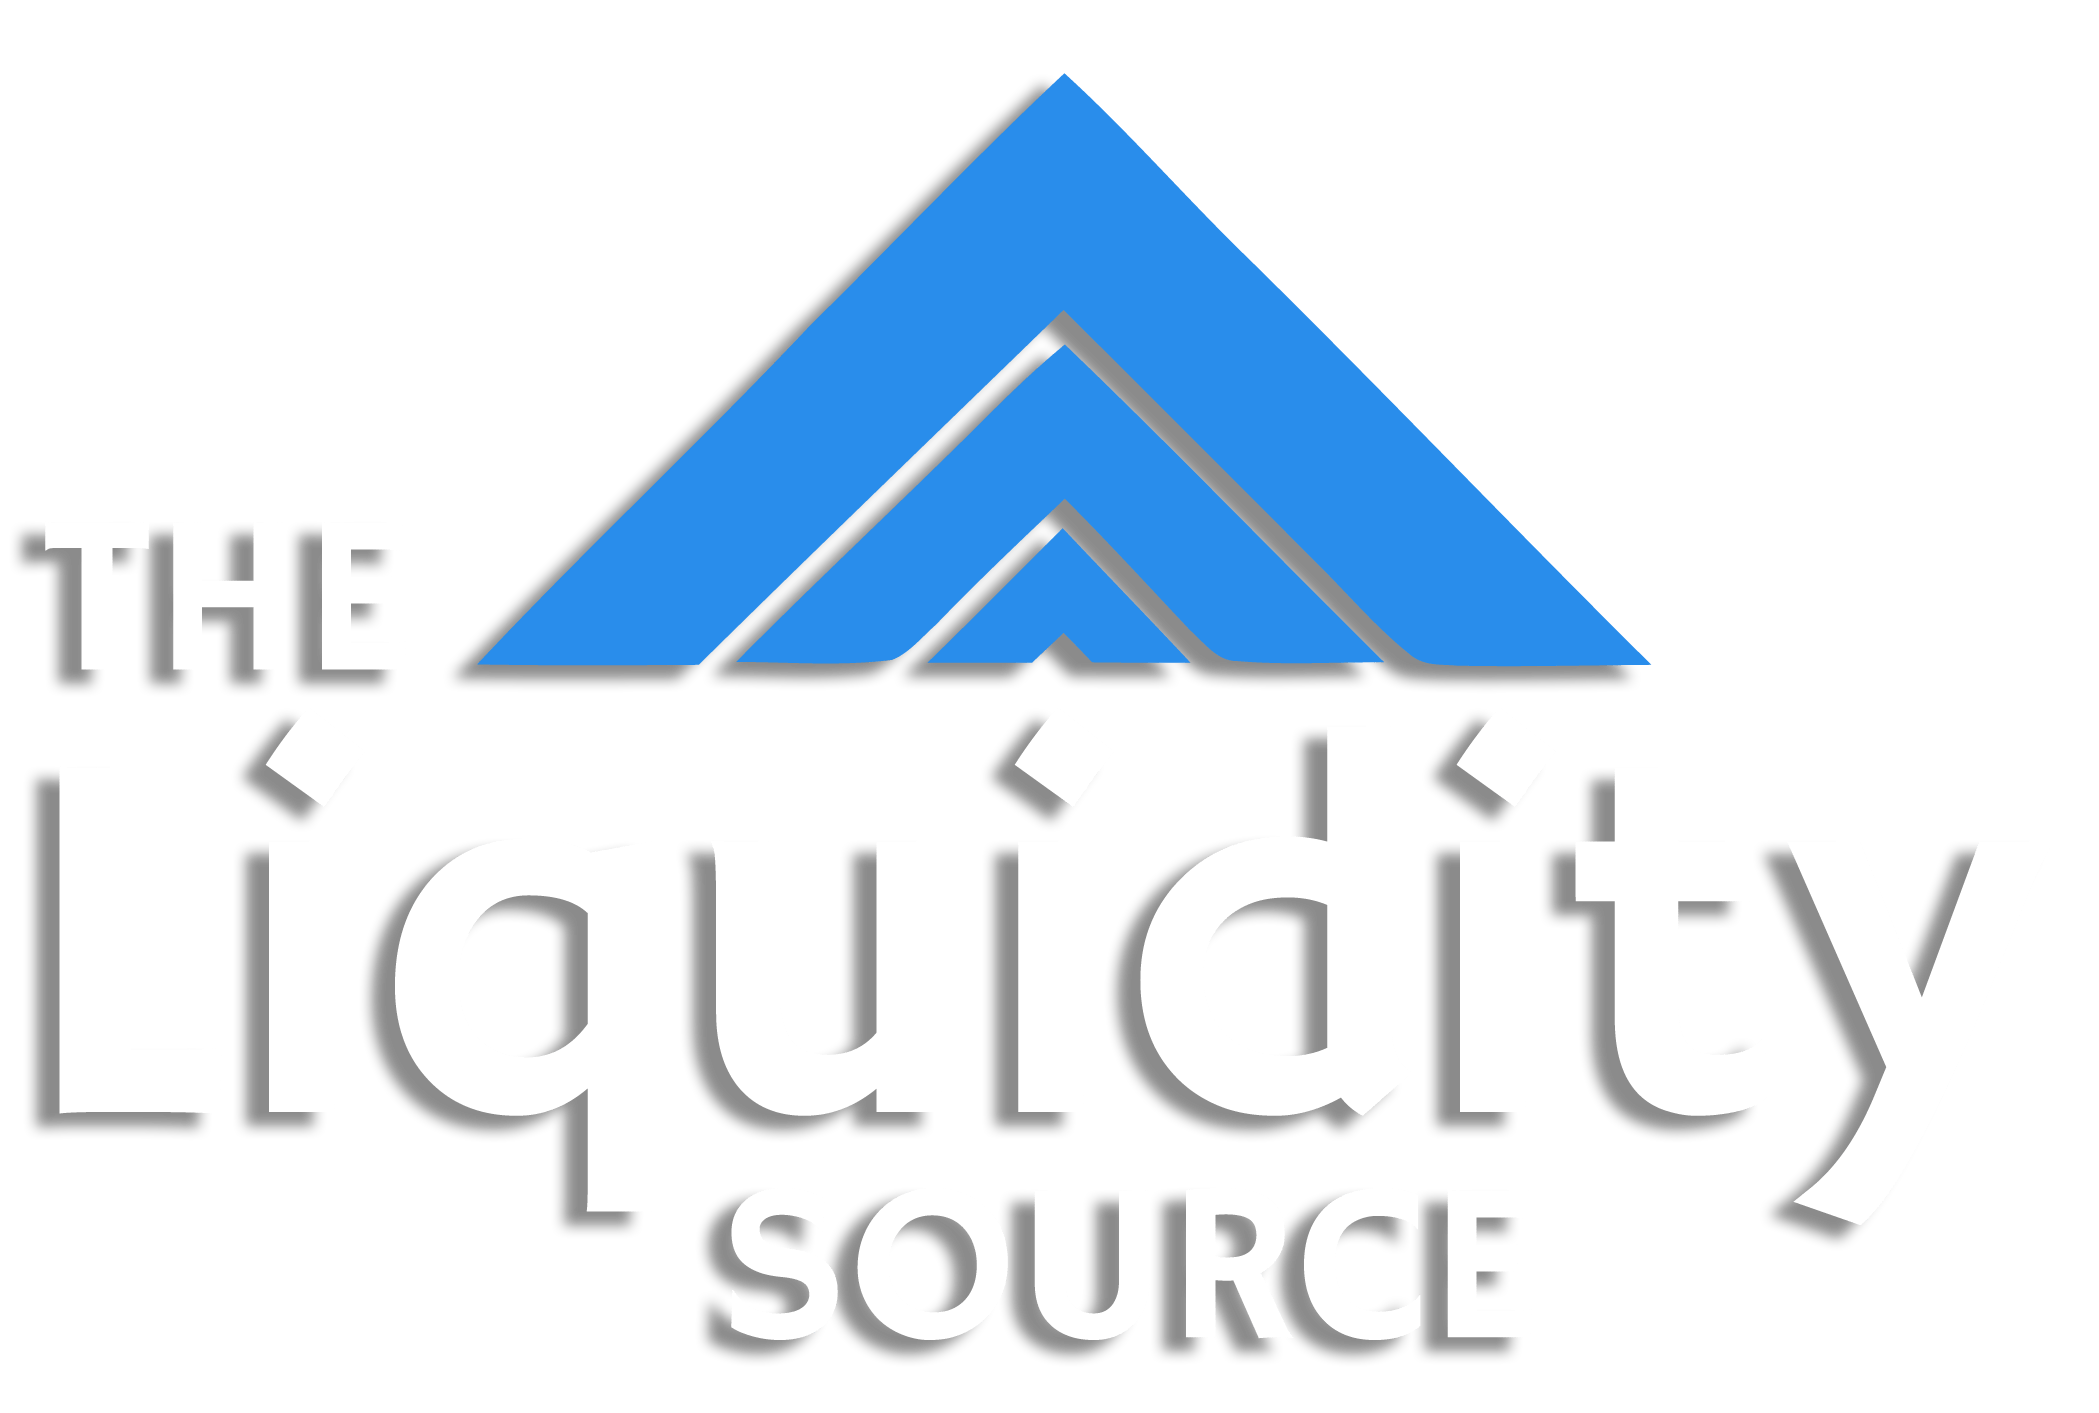 The Liquidity Source